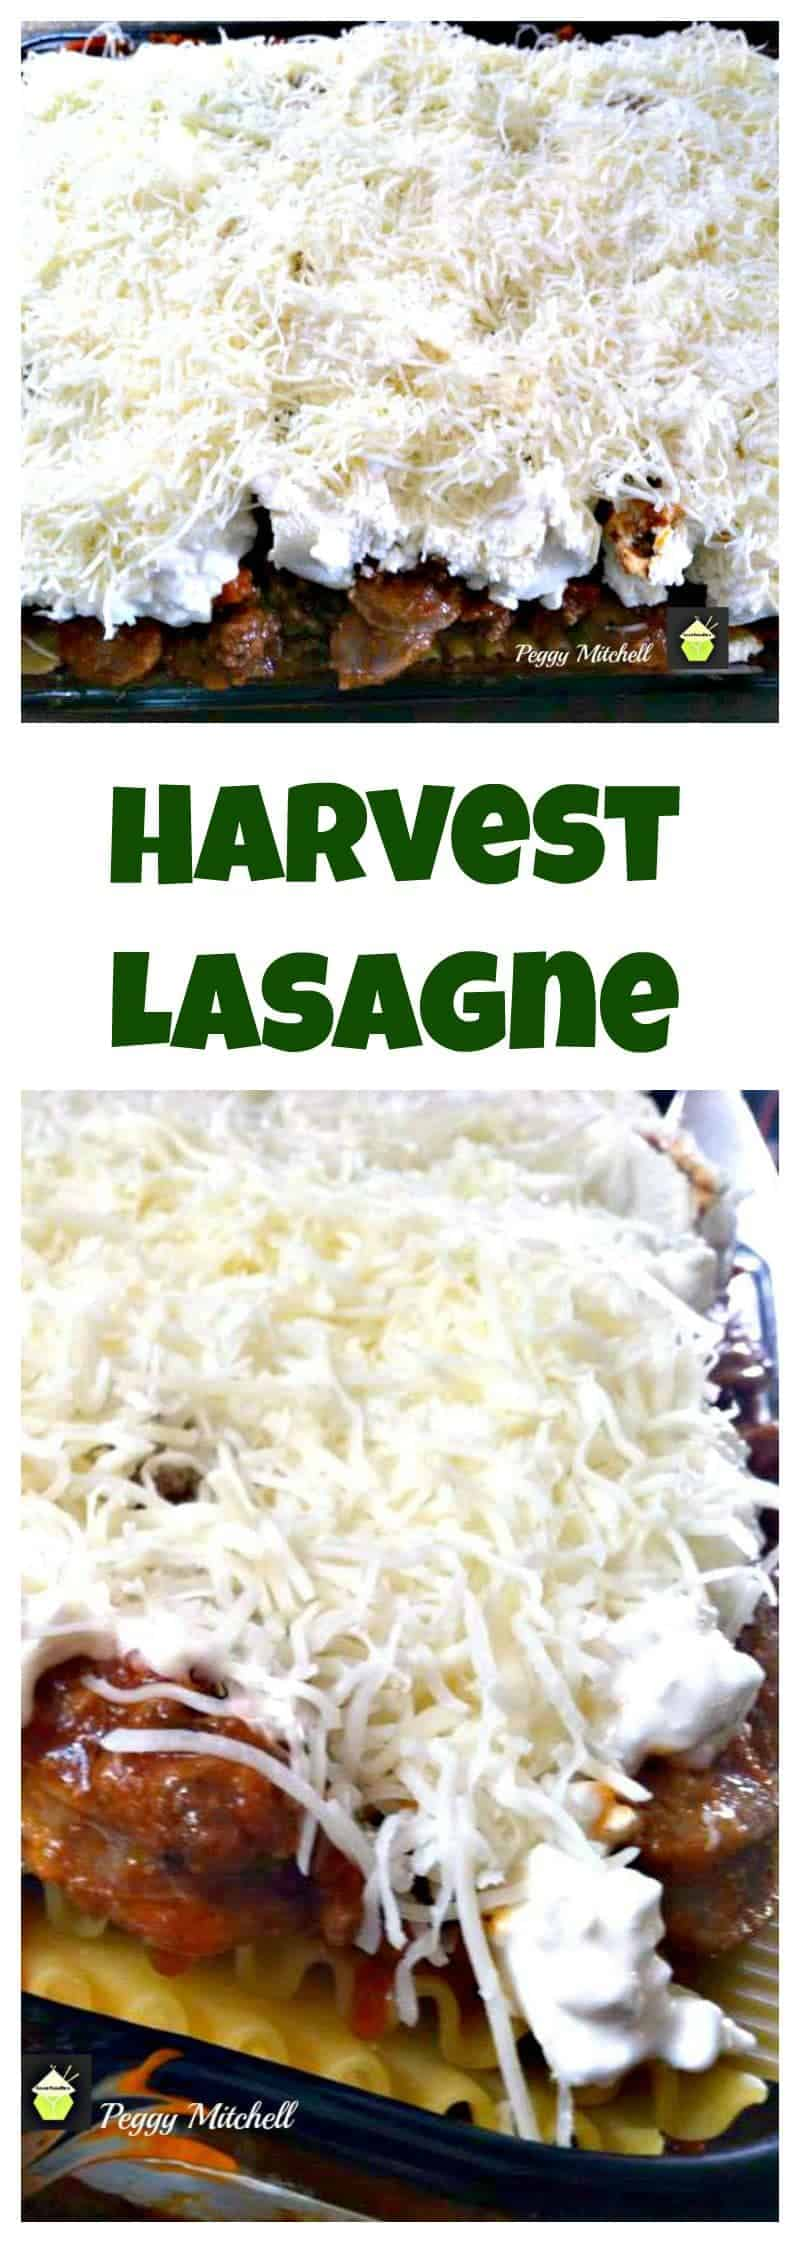 Harvest Lasagne. Always a hit with a crowd and full of goodies!